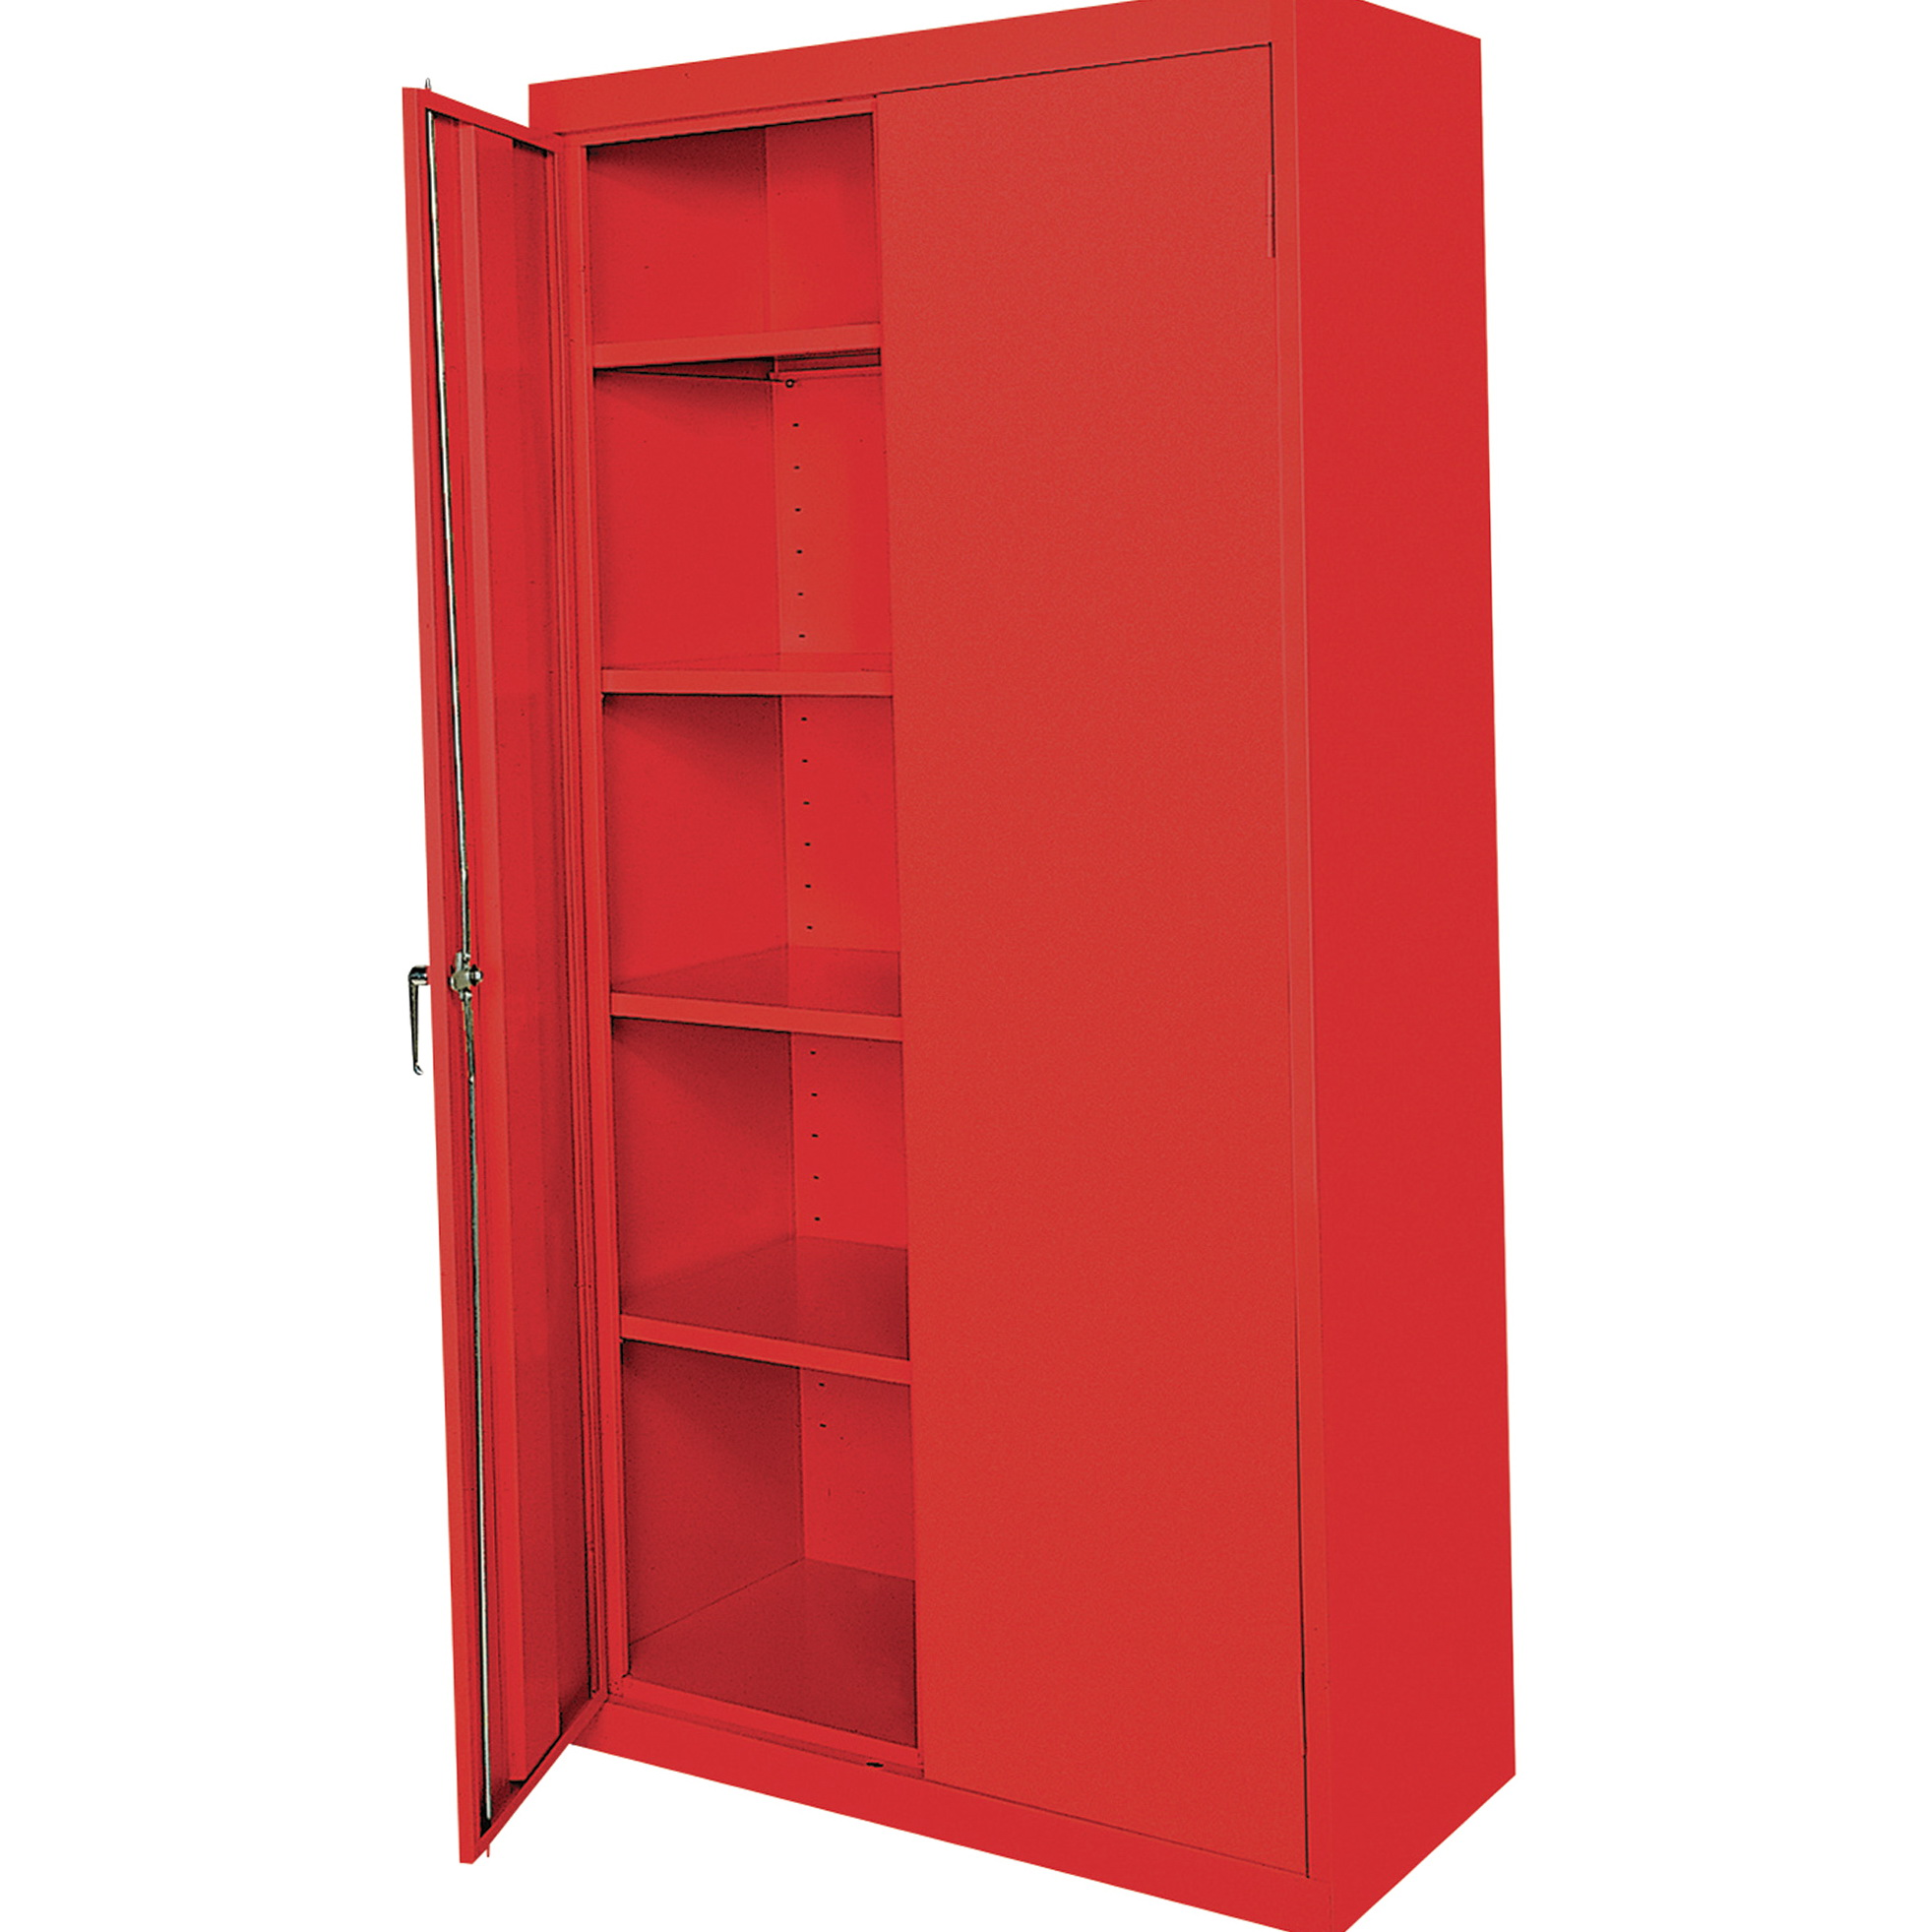 Red Metal Storage Cabinets